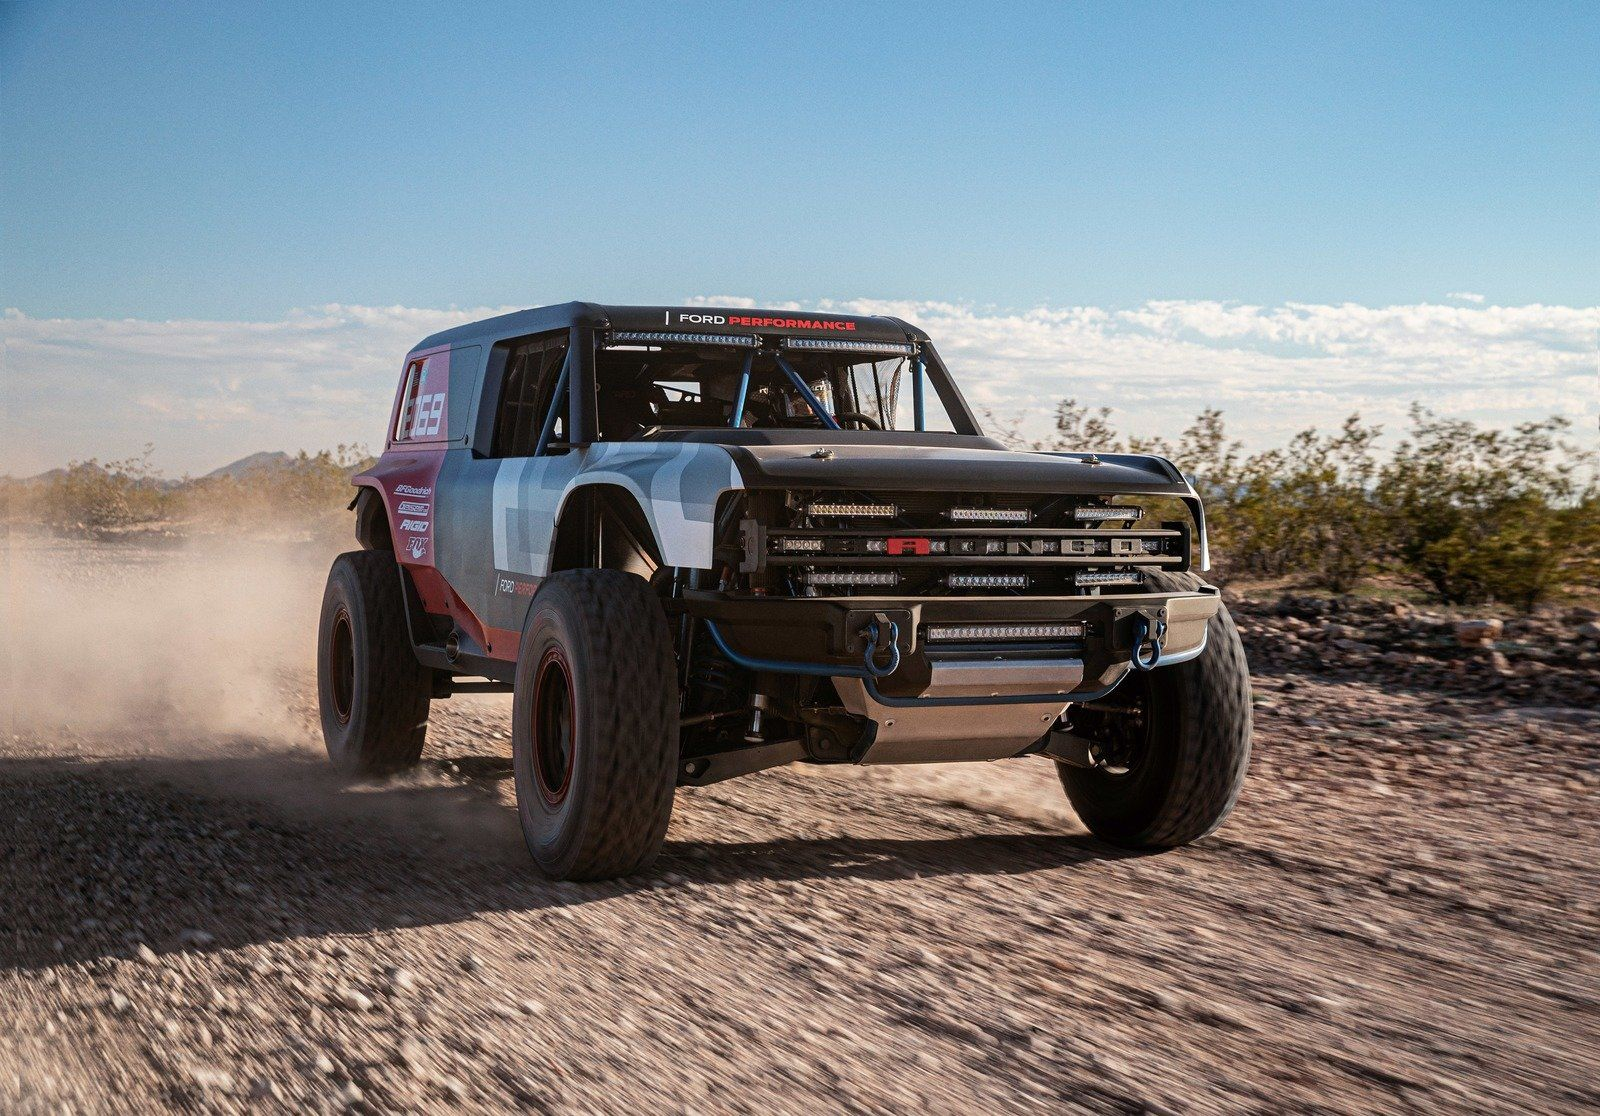 Google Image Result For Https Pictures Topspeed Com Img Crop 201911 Ford Bronco R Race P 1 1600x0w Jpg With Images Ford Bronco New Bronco Bronco